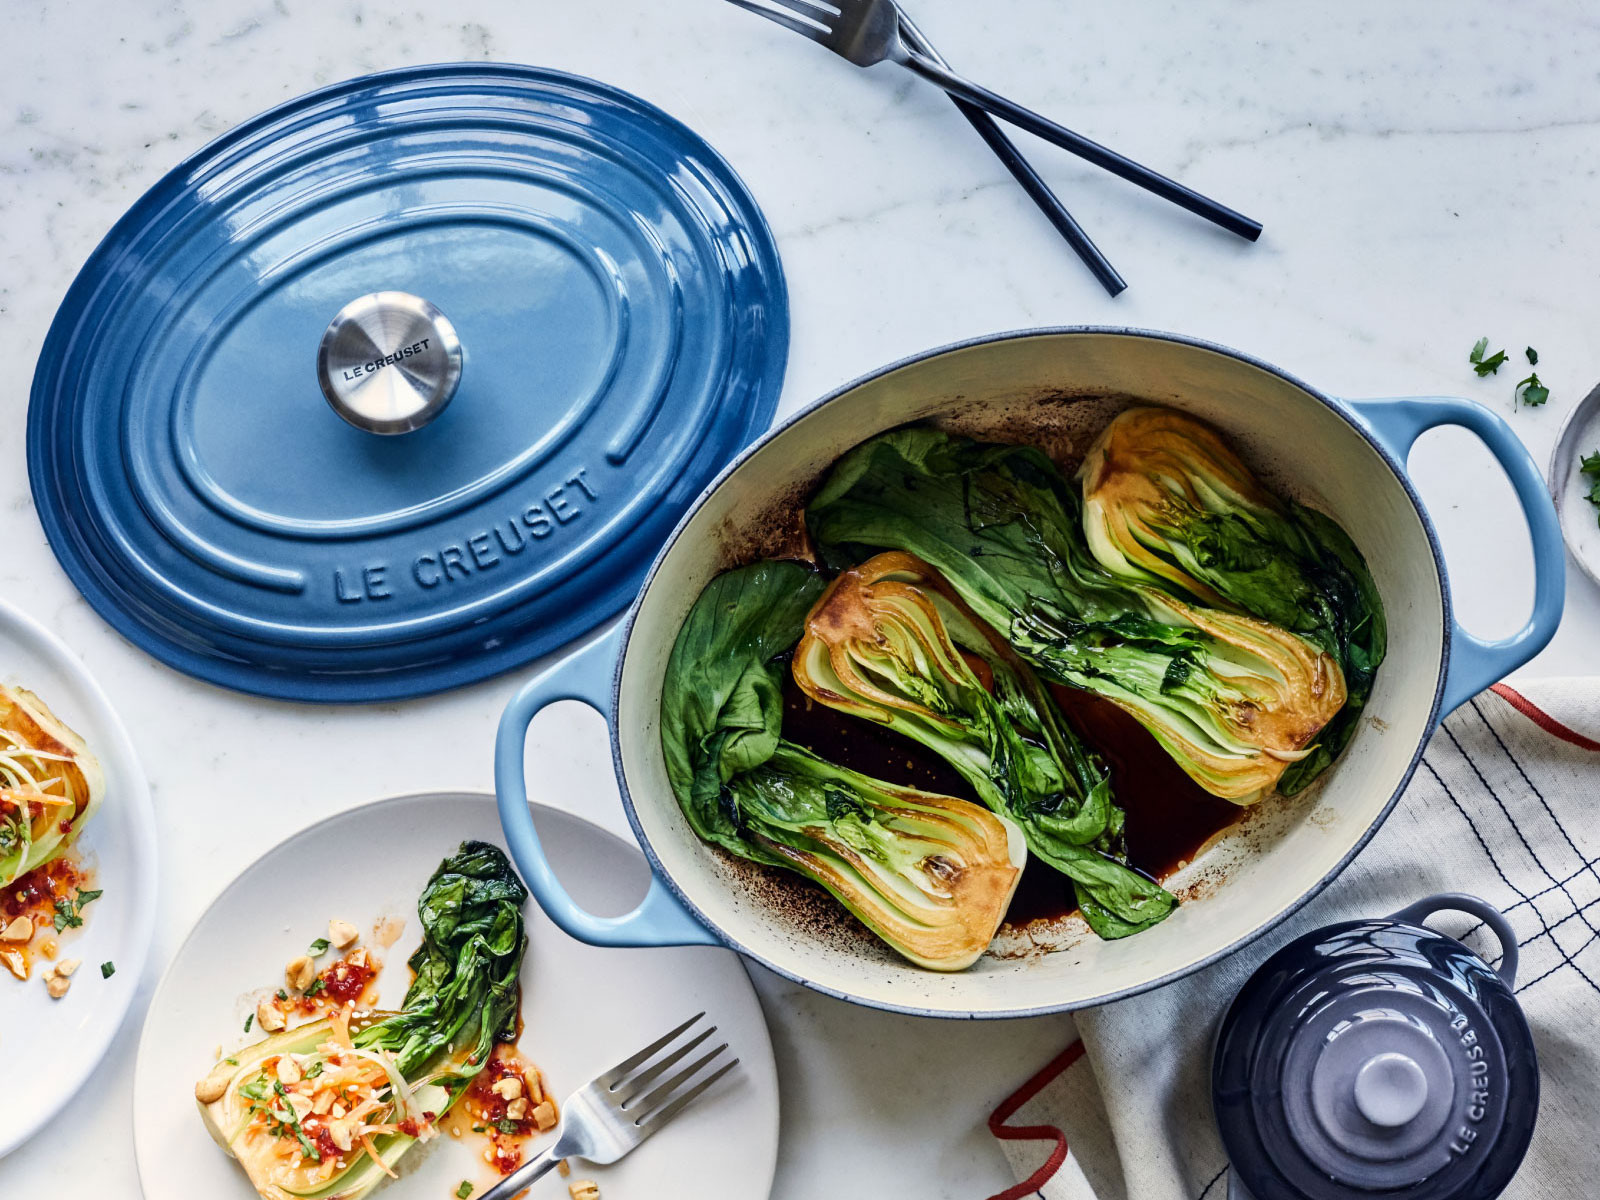 Le Creuset's First-Ever Factory-to-Table Online Flash Sale Is Happening Right Now